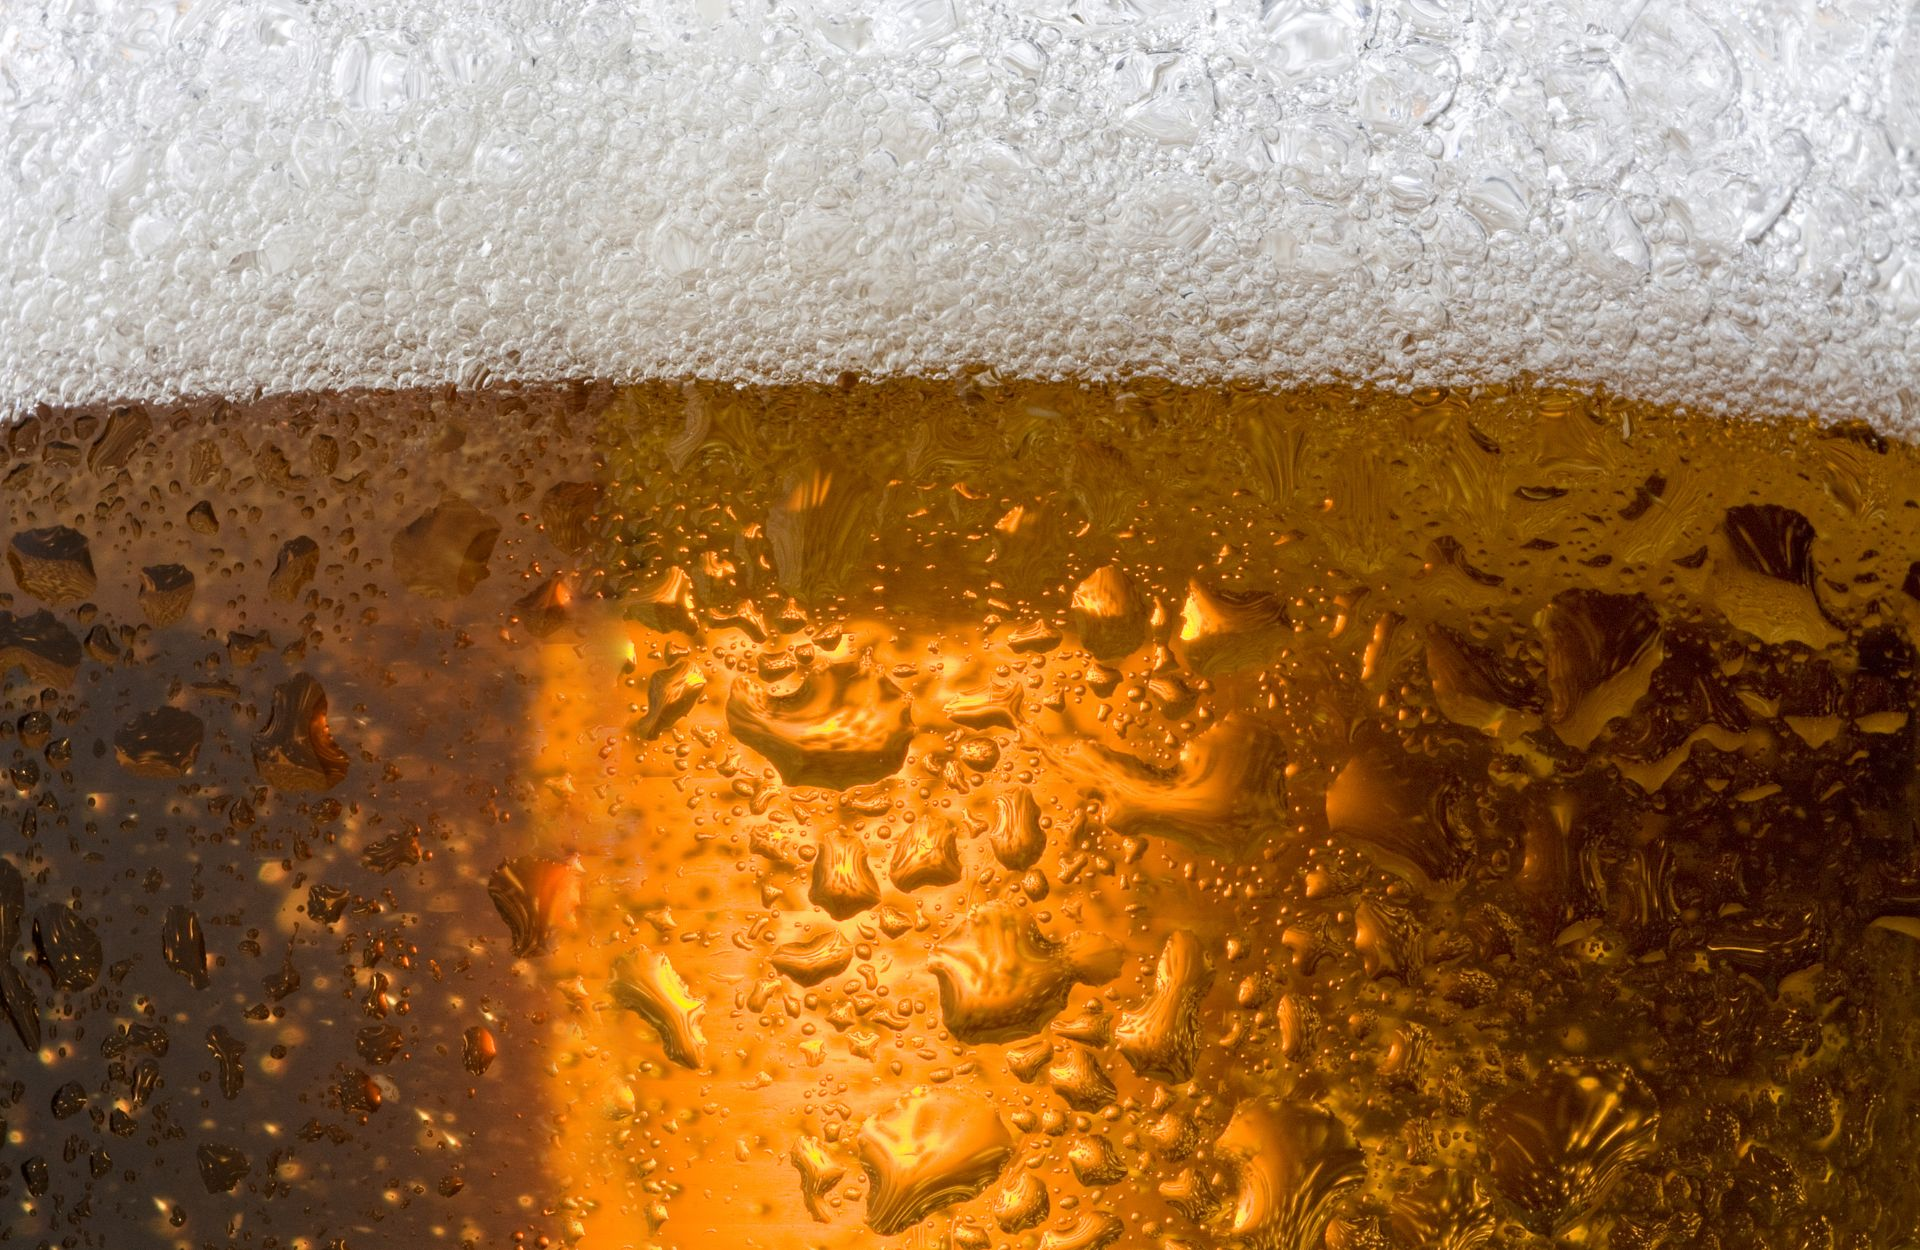 Close up of a glass of beer with foam and condensation on the outside